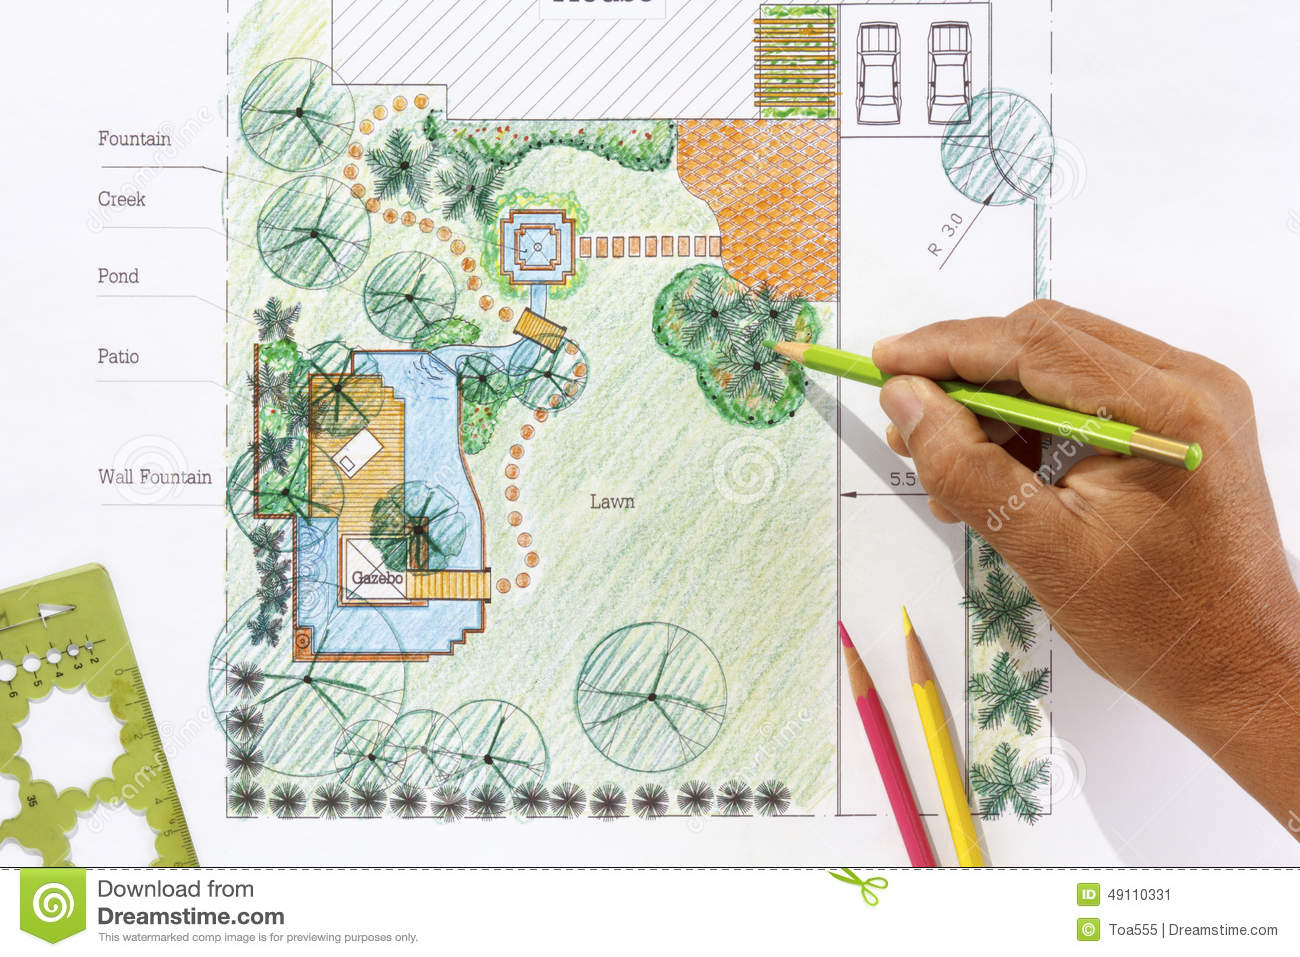 Landscape architect design water garden plans stock photo for Planning my garden layout